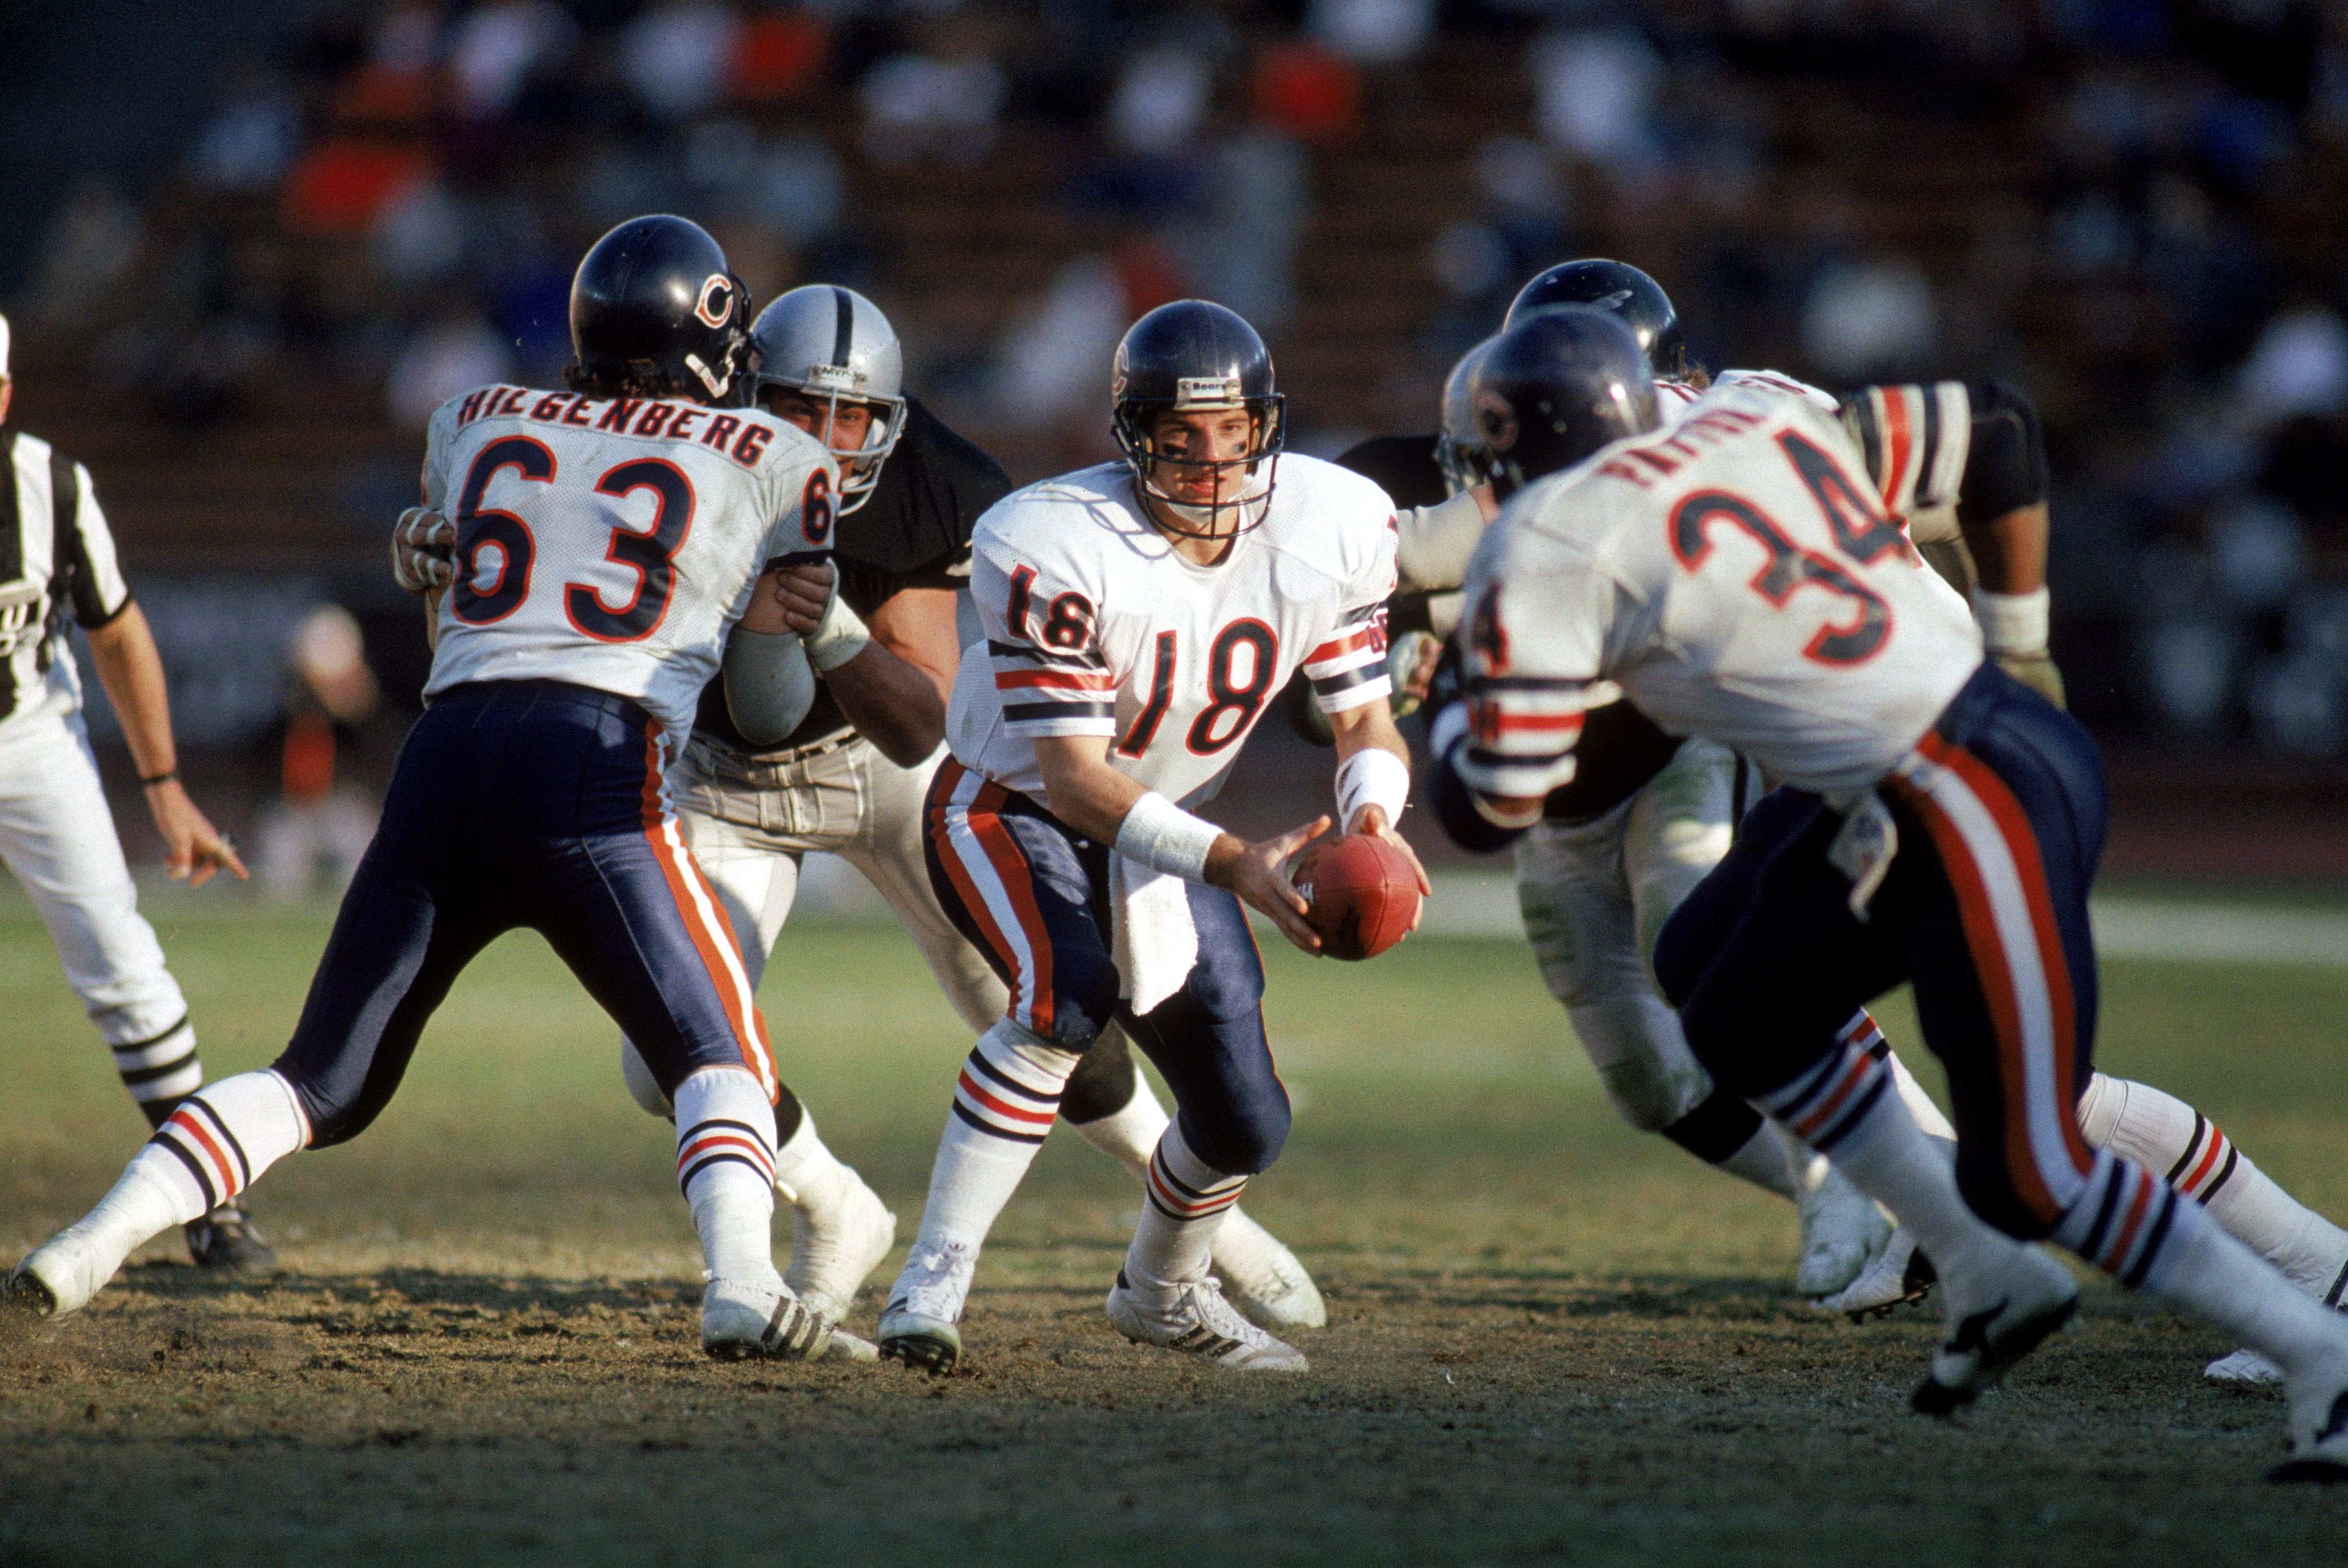 LOS ANGELES - DECEMBER 27:  Quarterback Mike Tomczak #18 pitches the ball to running back Walter Payton #34 of the Chicago Bears during a game against the Los Angeles Raiders at the Los Angeles Memorial Coliseum on December 27, 1987 in Los Angeles, Califo